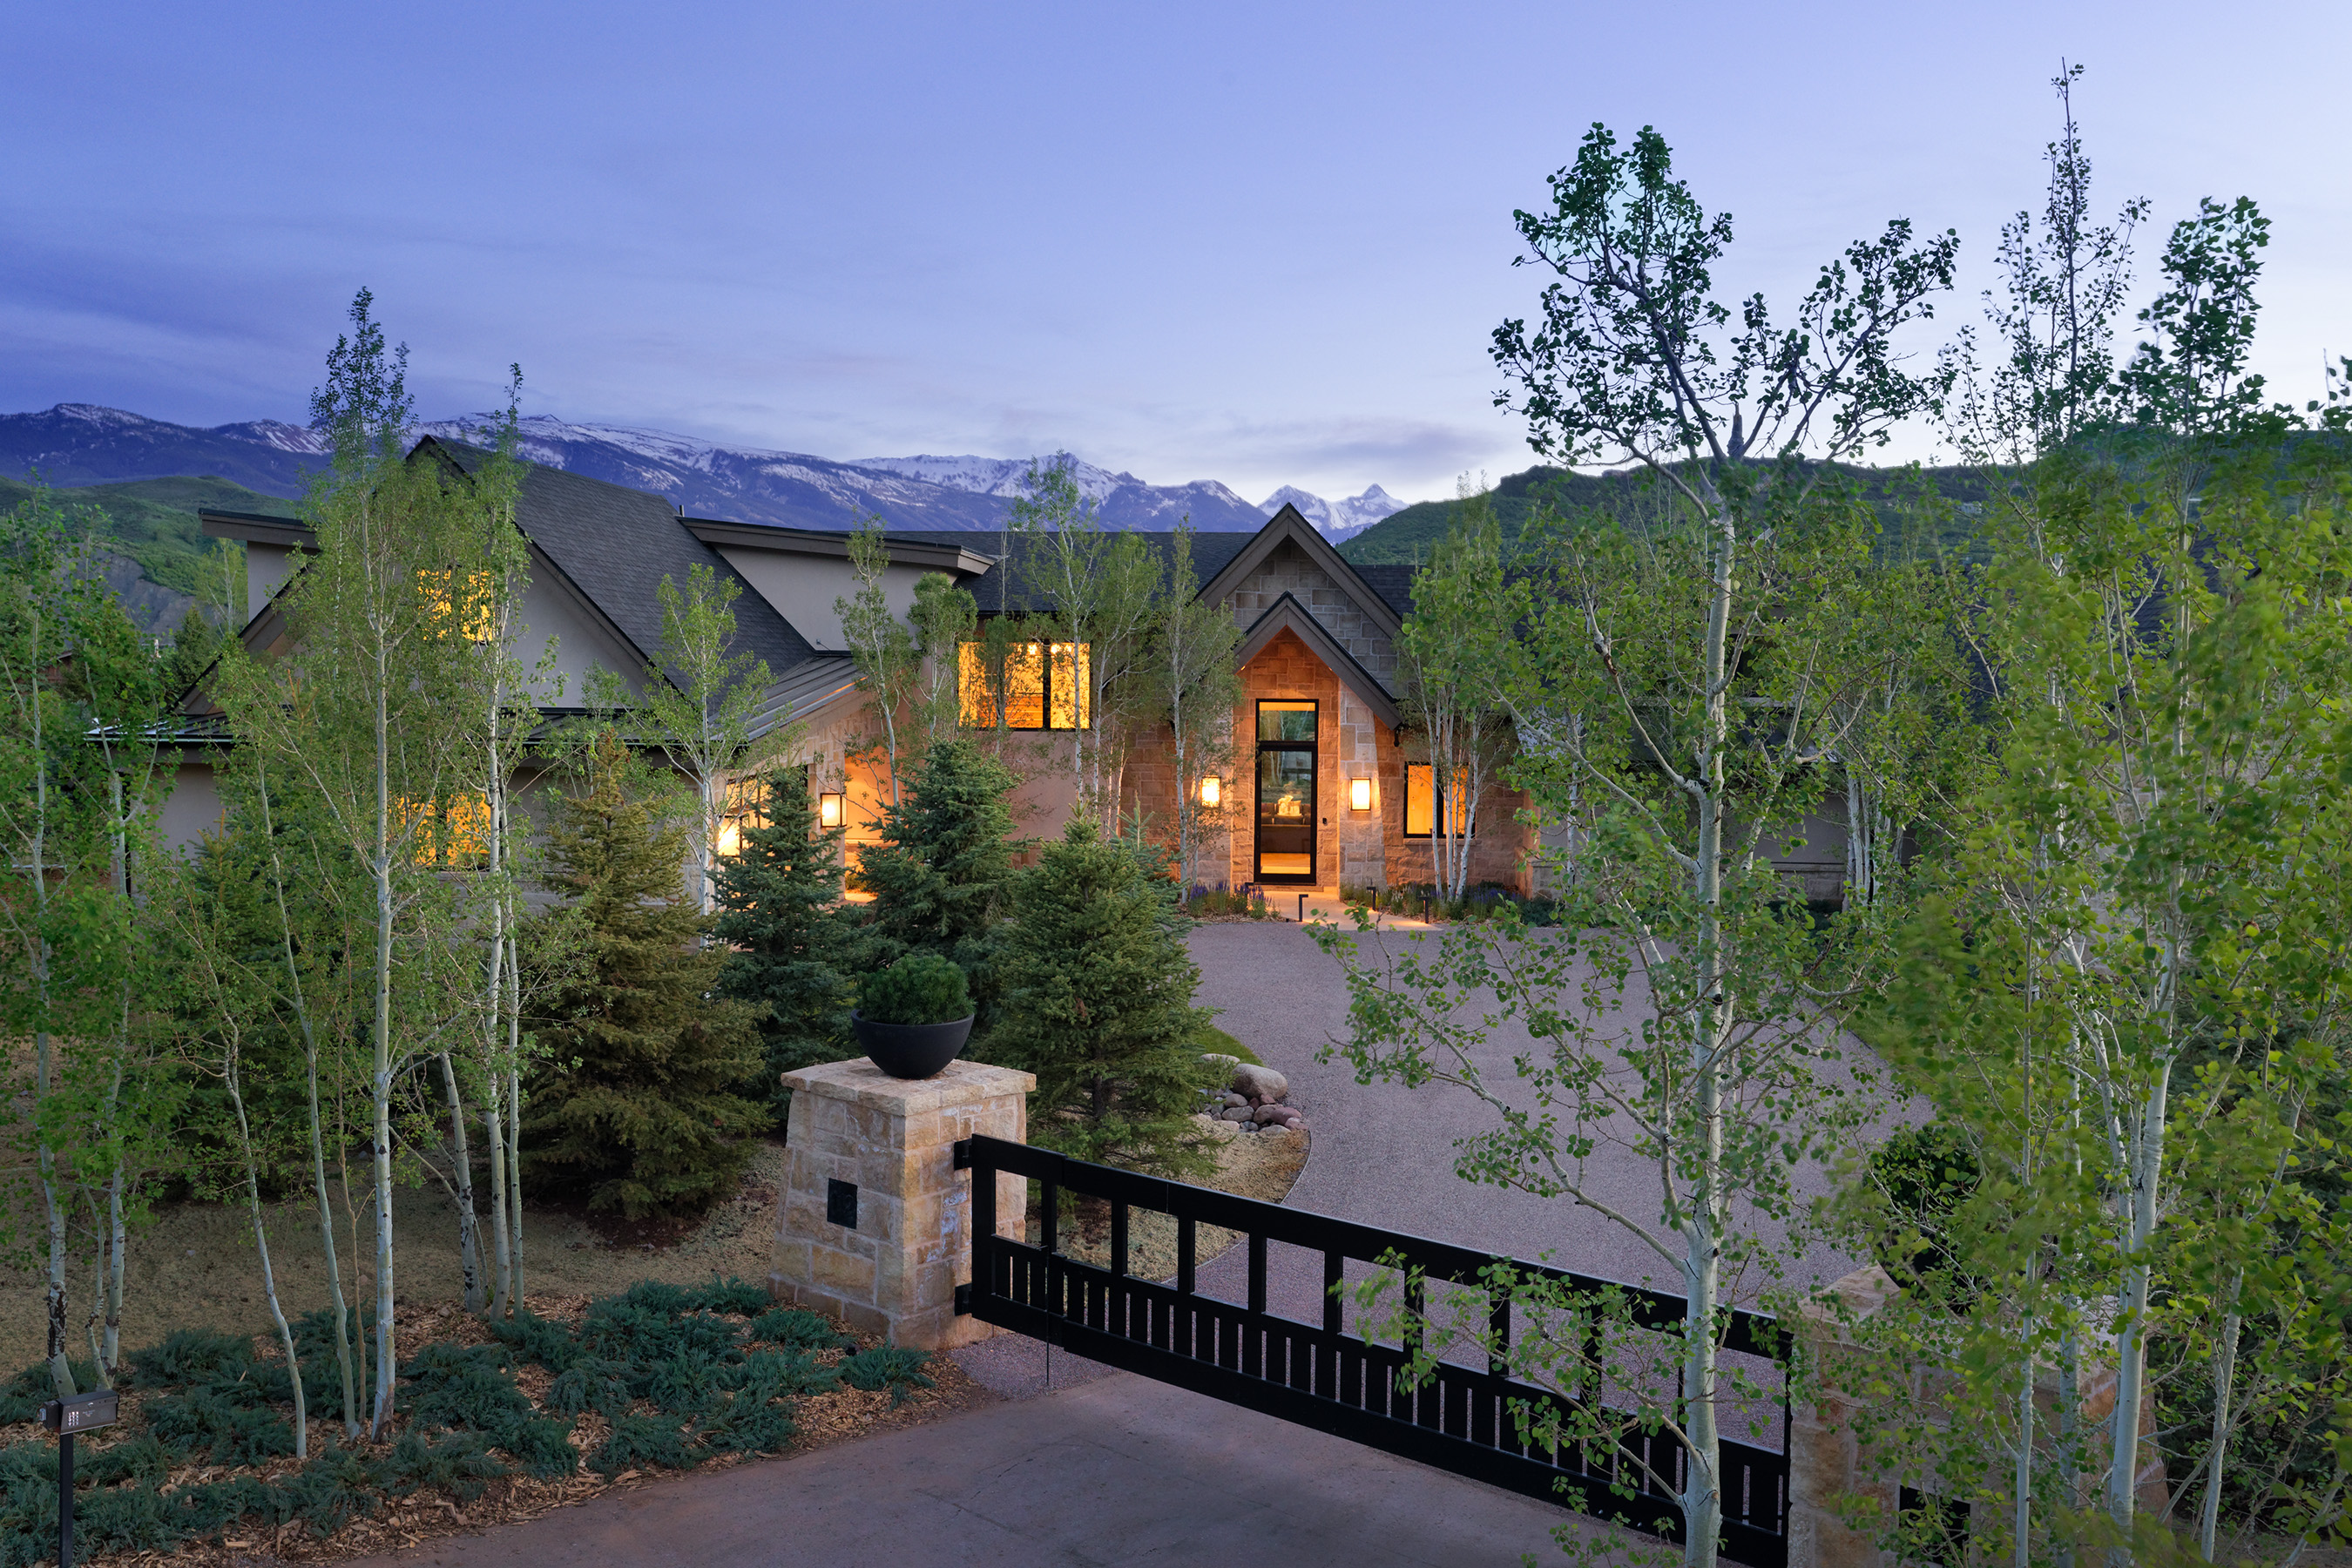 Single Family Home for Sale at The Best of the West 112 Byers Court McLain Flats, Aspen, Colorado, 81611 United States